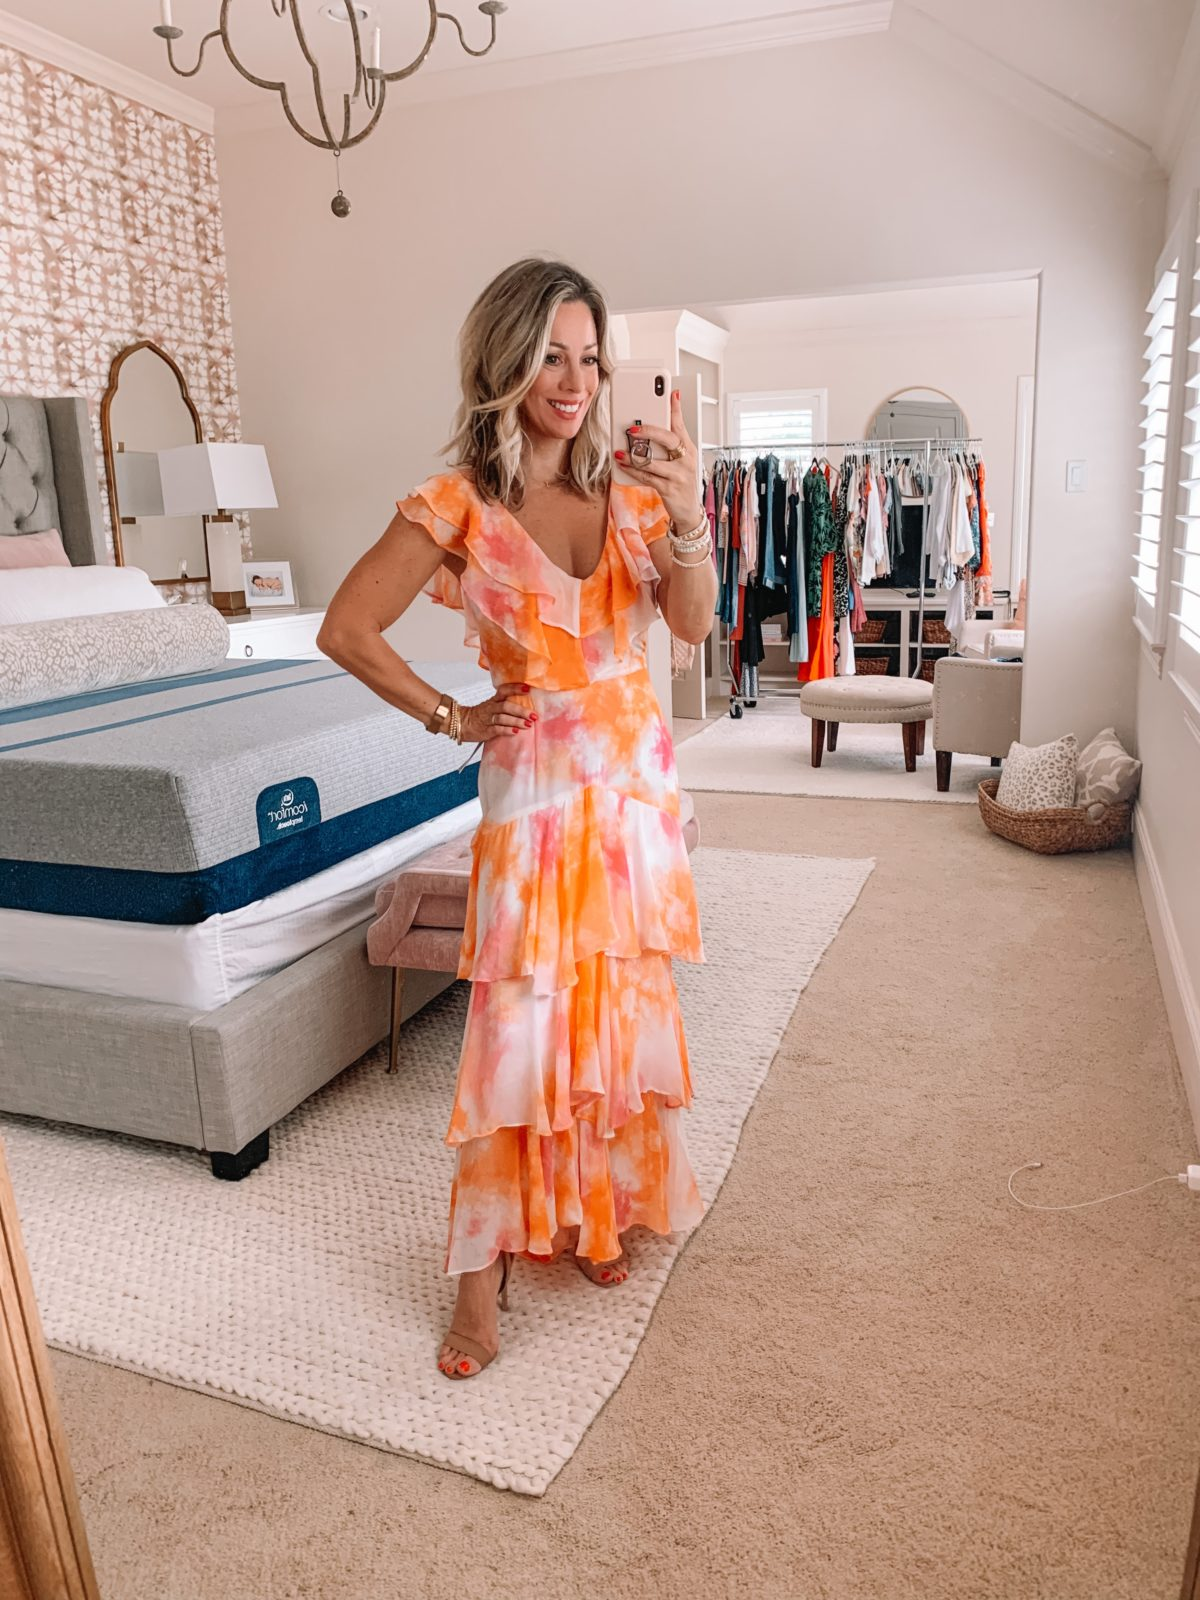 Dressing Room Finds Nordstrom and Target, Orange Water Color Tiered Maxi Dress, Nude Heels